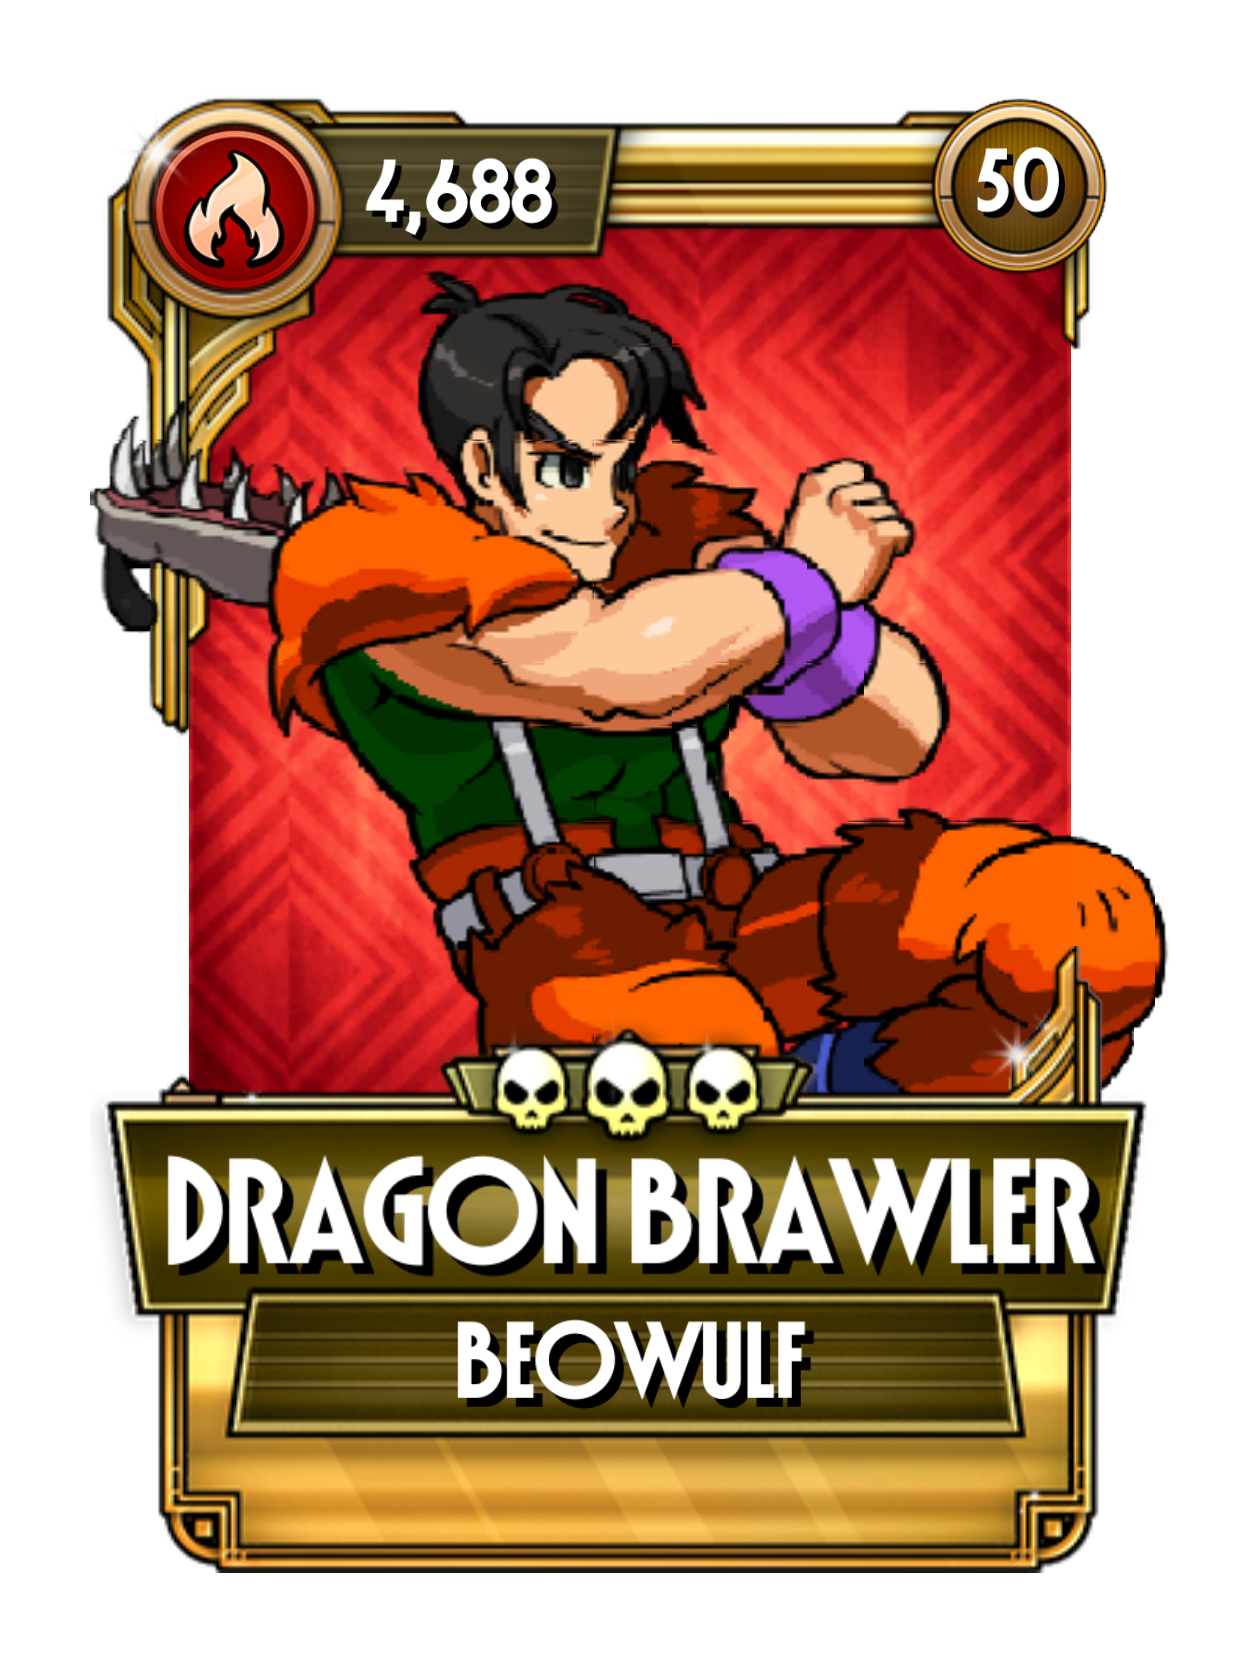 Dragon Brawler